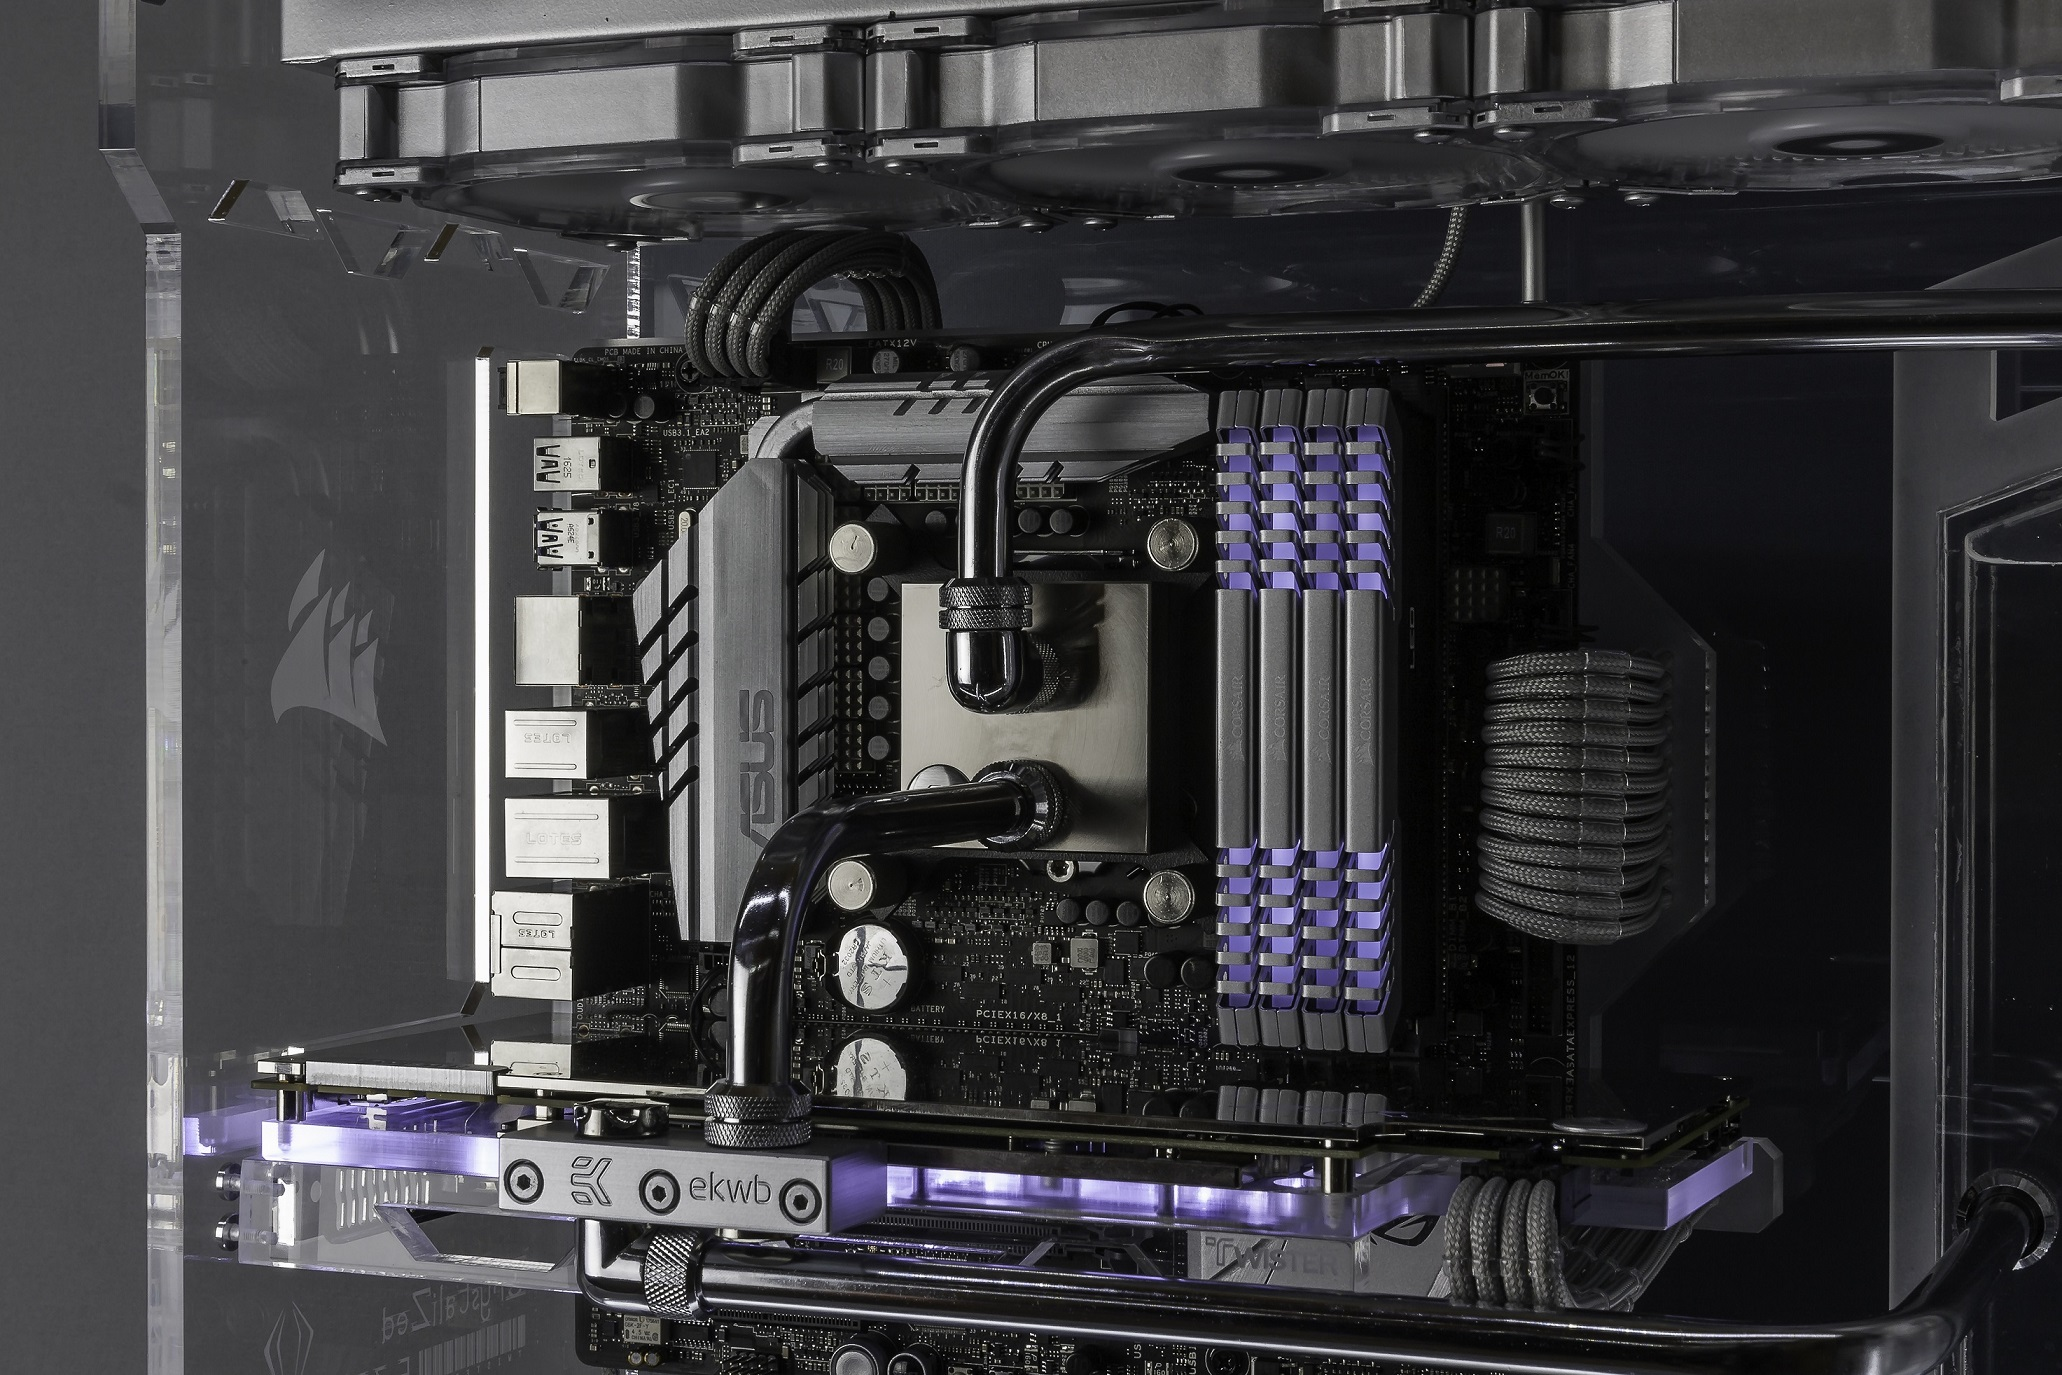 Twistermod_Corsair_ROG_570x_Crystalized_35